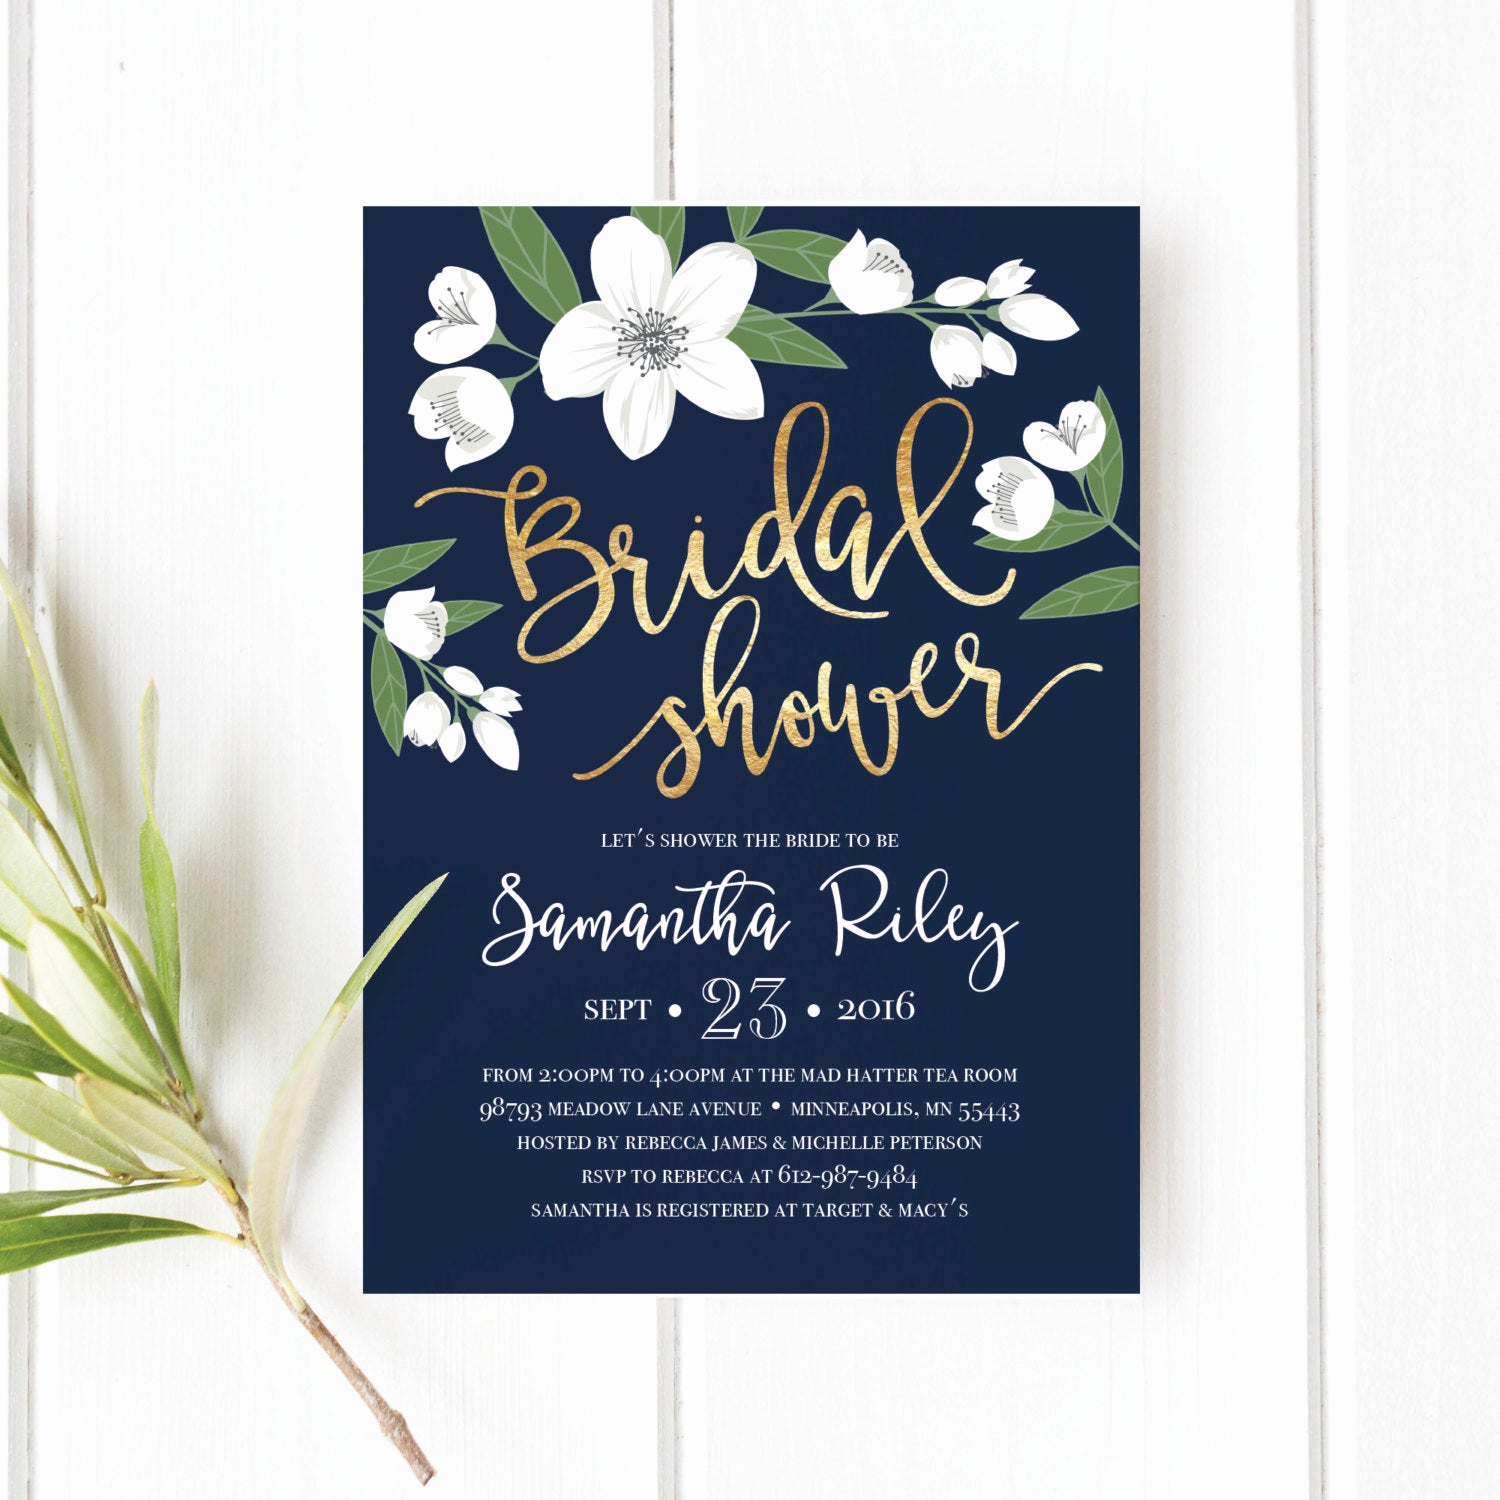 Bridal Shower Invitation Templates Beautiful Printable Bridal Shower Invitation Template Wedding Shower